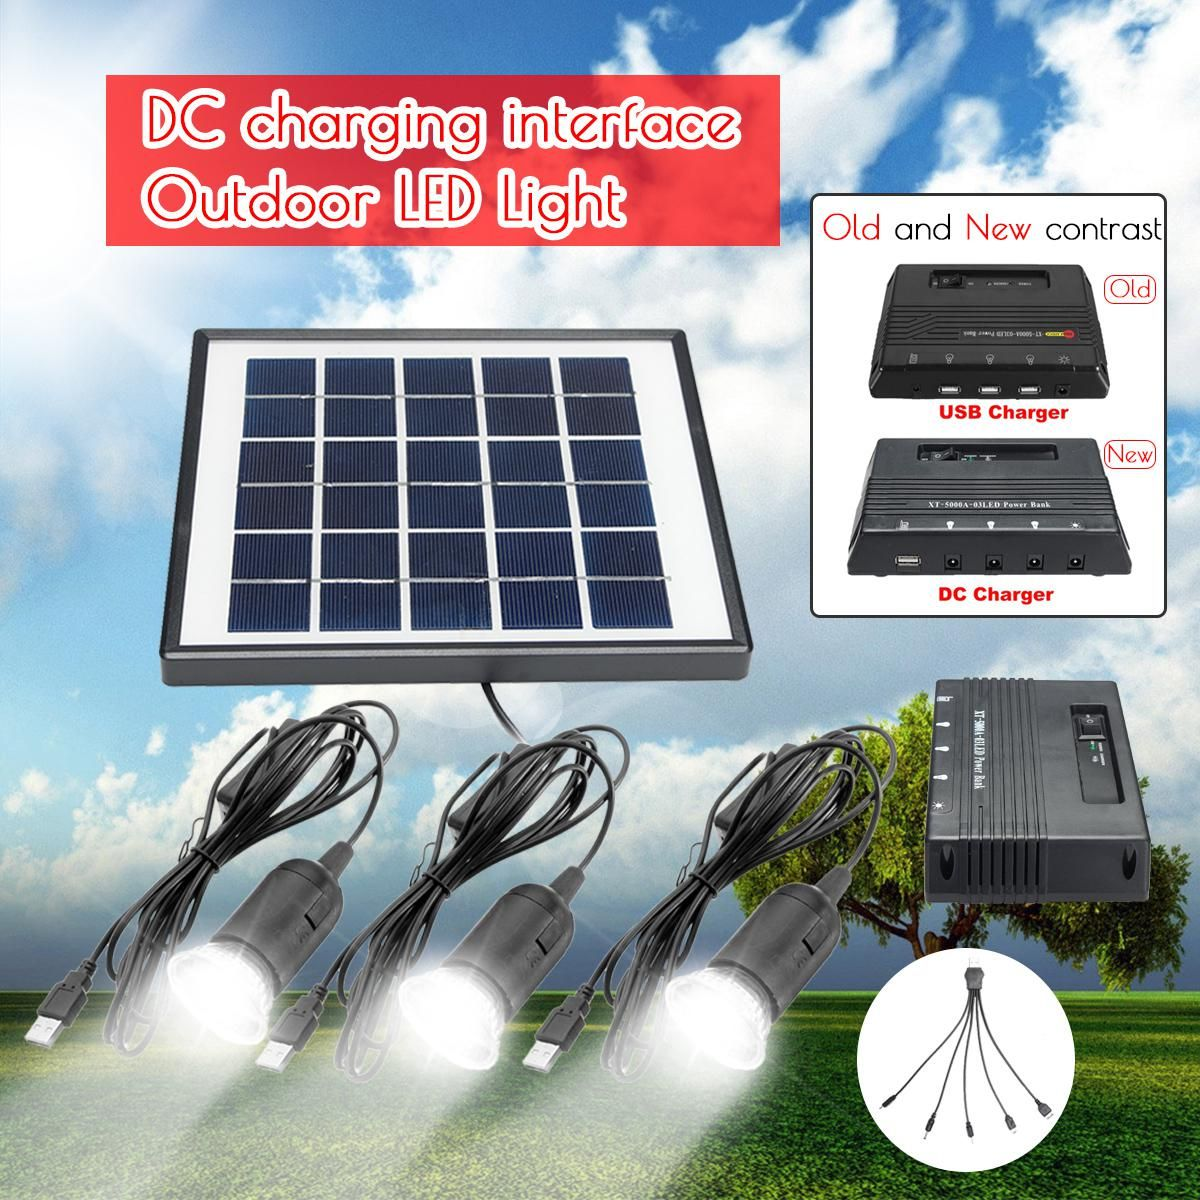 3pcs 1w Solar Lamp Led Garden Light Outdoor Lampe Solaire 6v 4w Solar Panel 5000mah Dc Power Bank For Outdoor Camping Solar Panels Solar Solar Power Diy